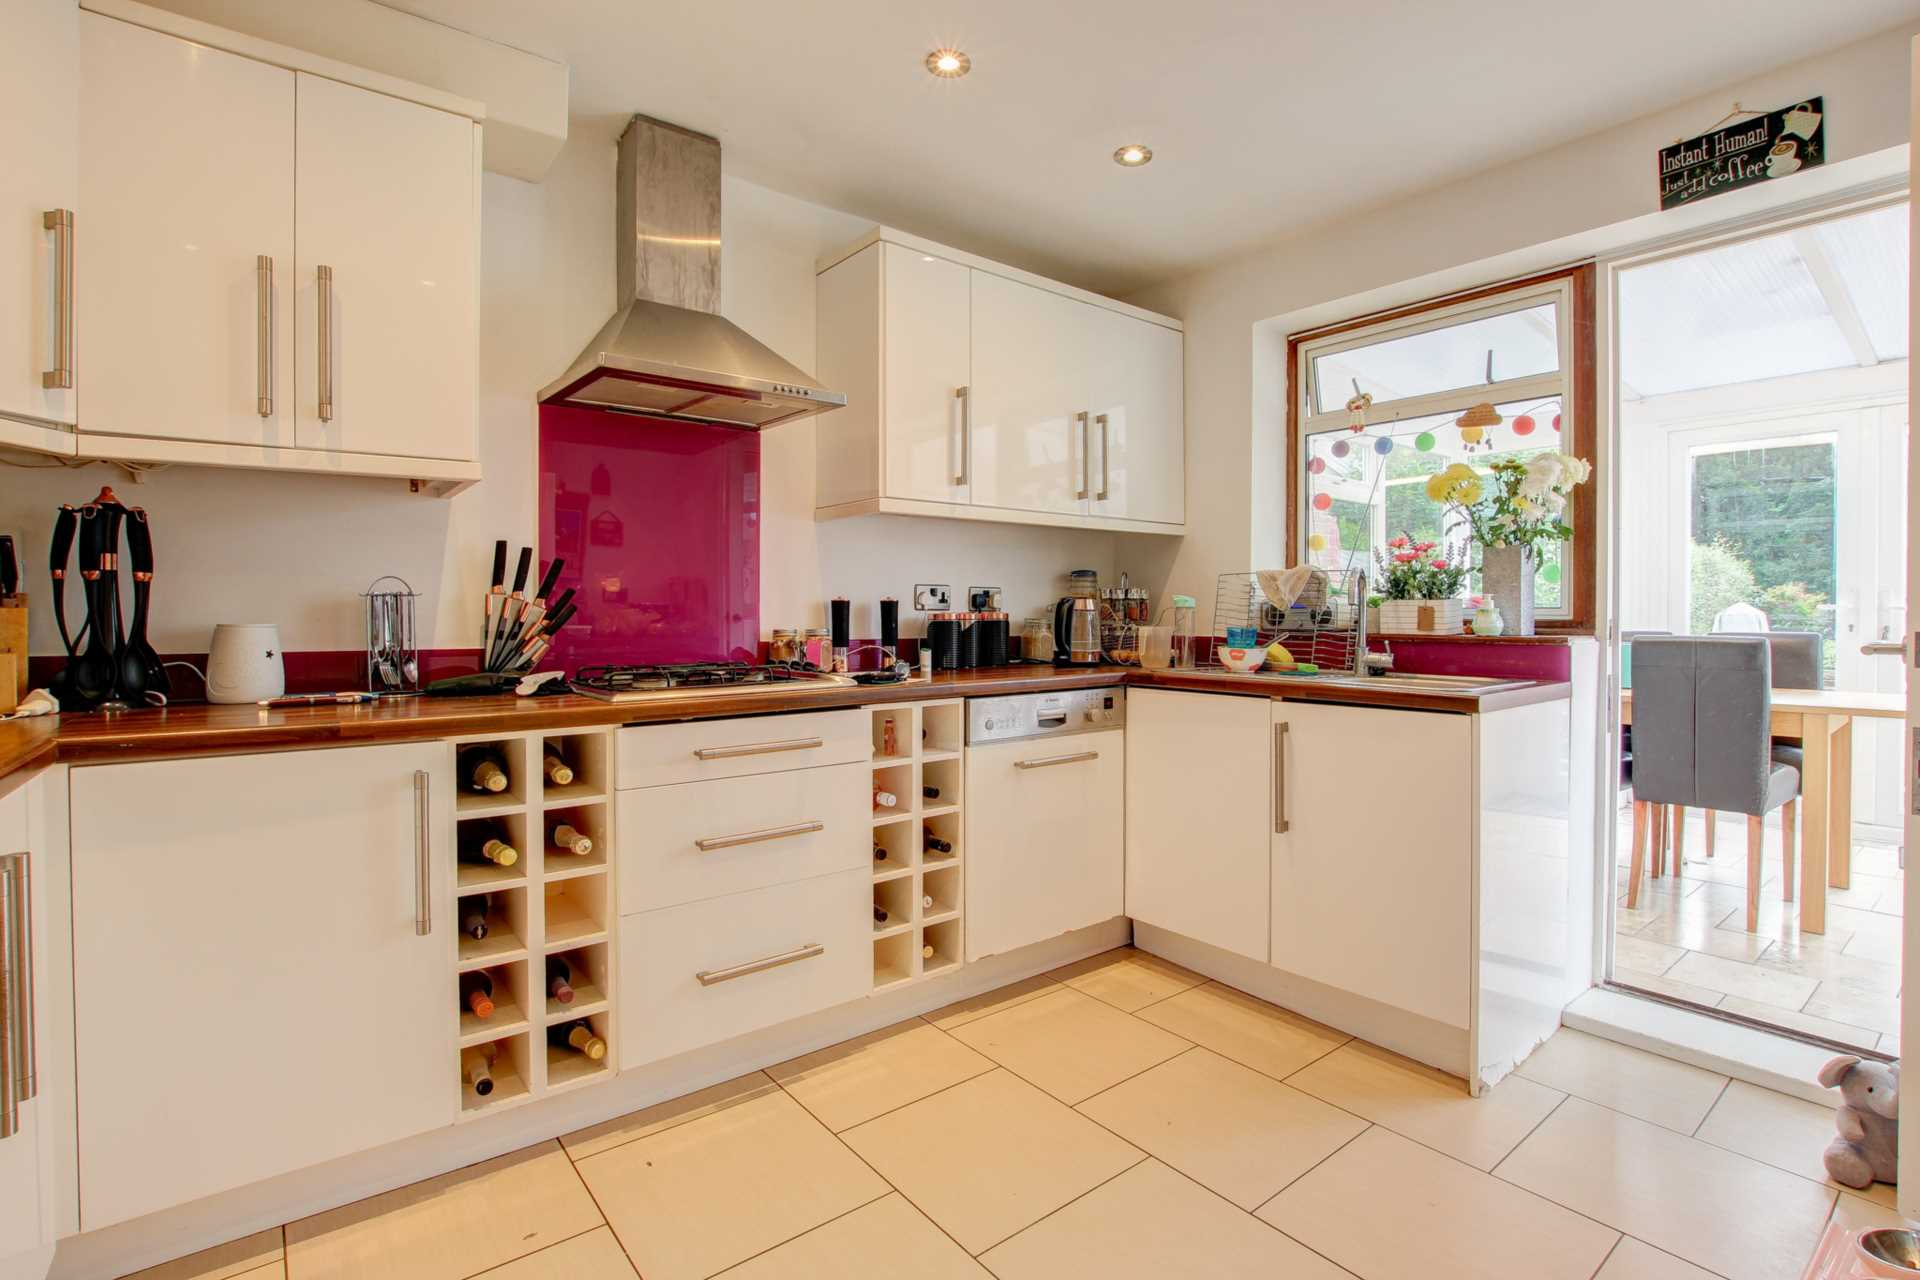 3 bed terraced house for sale in Churchill Close, Sturminster Marshall, Wimborne 1